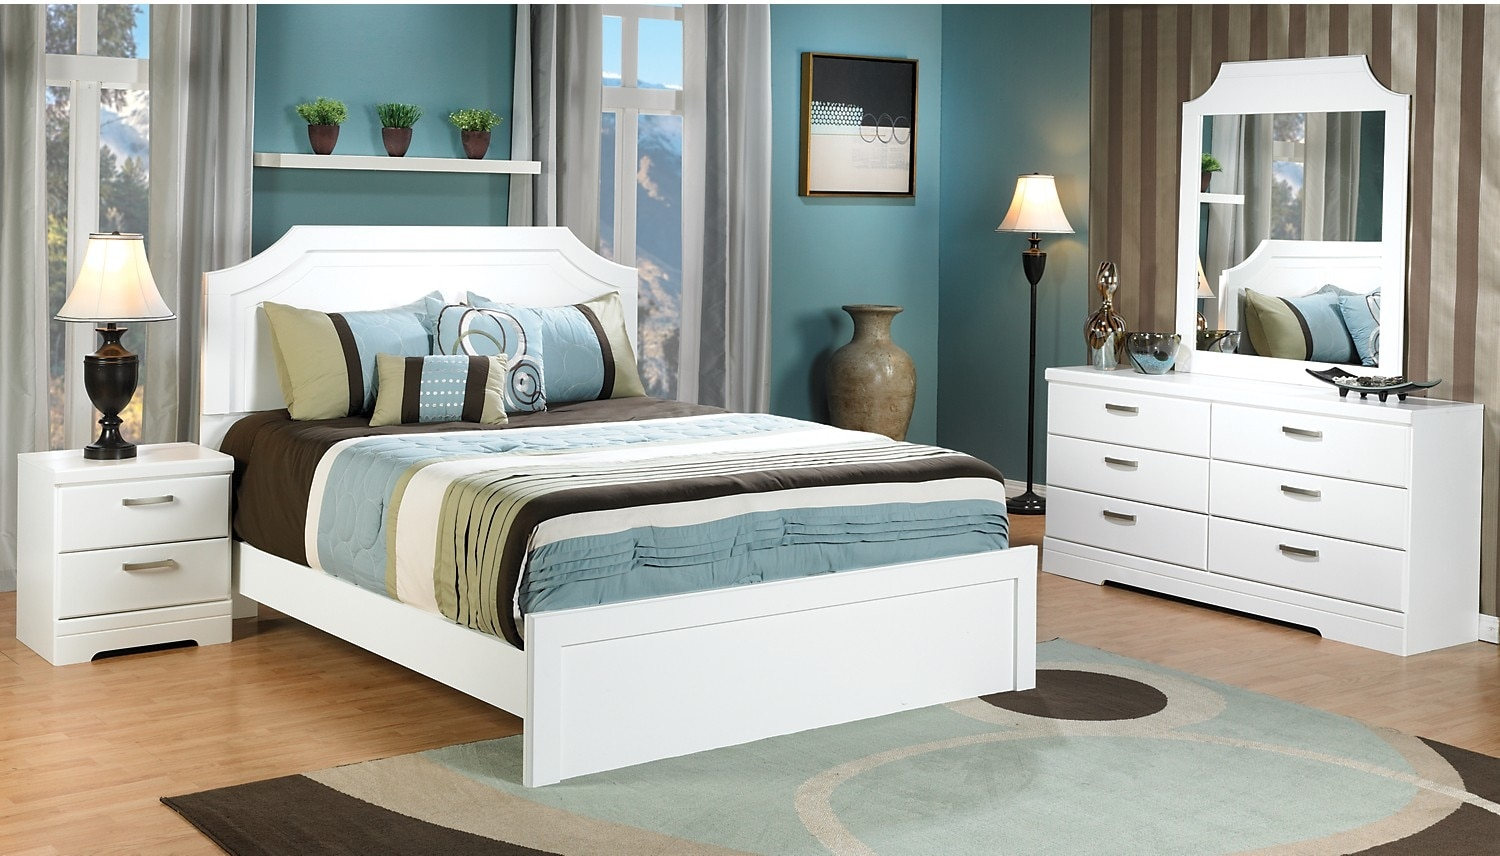 Bedroom Furniture - Bianco 7-Piece Queen Bedroom Package